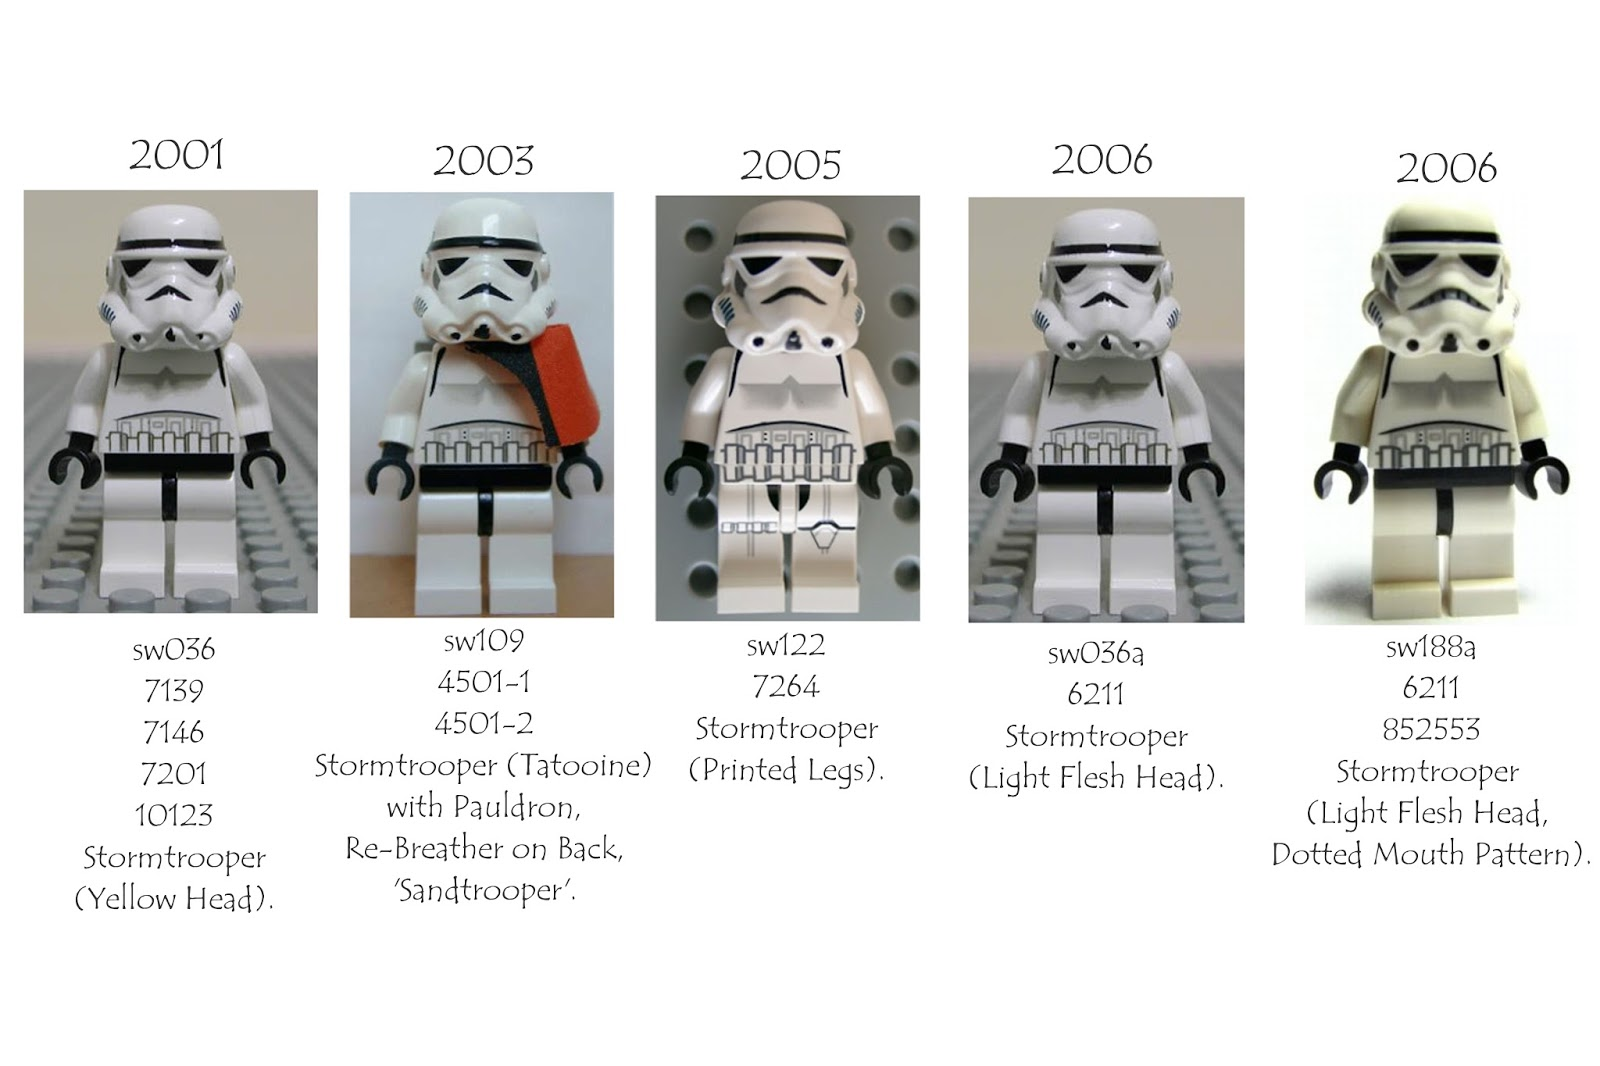 [Compilation] List of LEGO Stormtroopers ever released ...